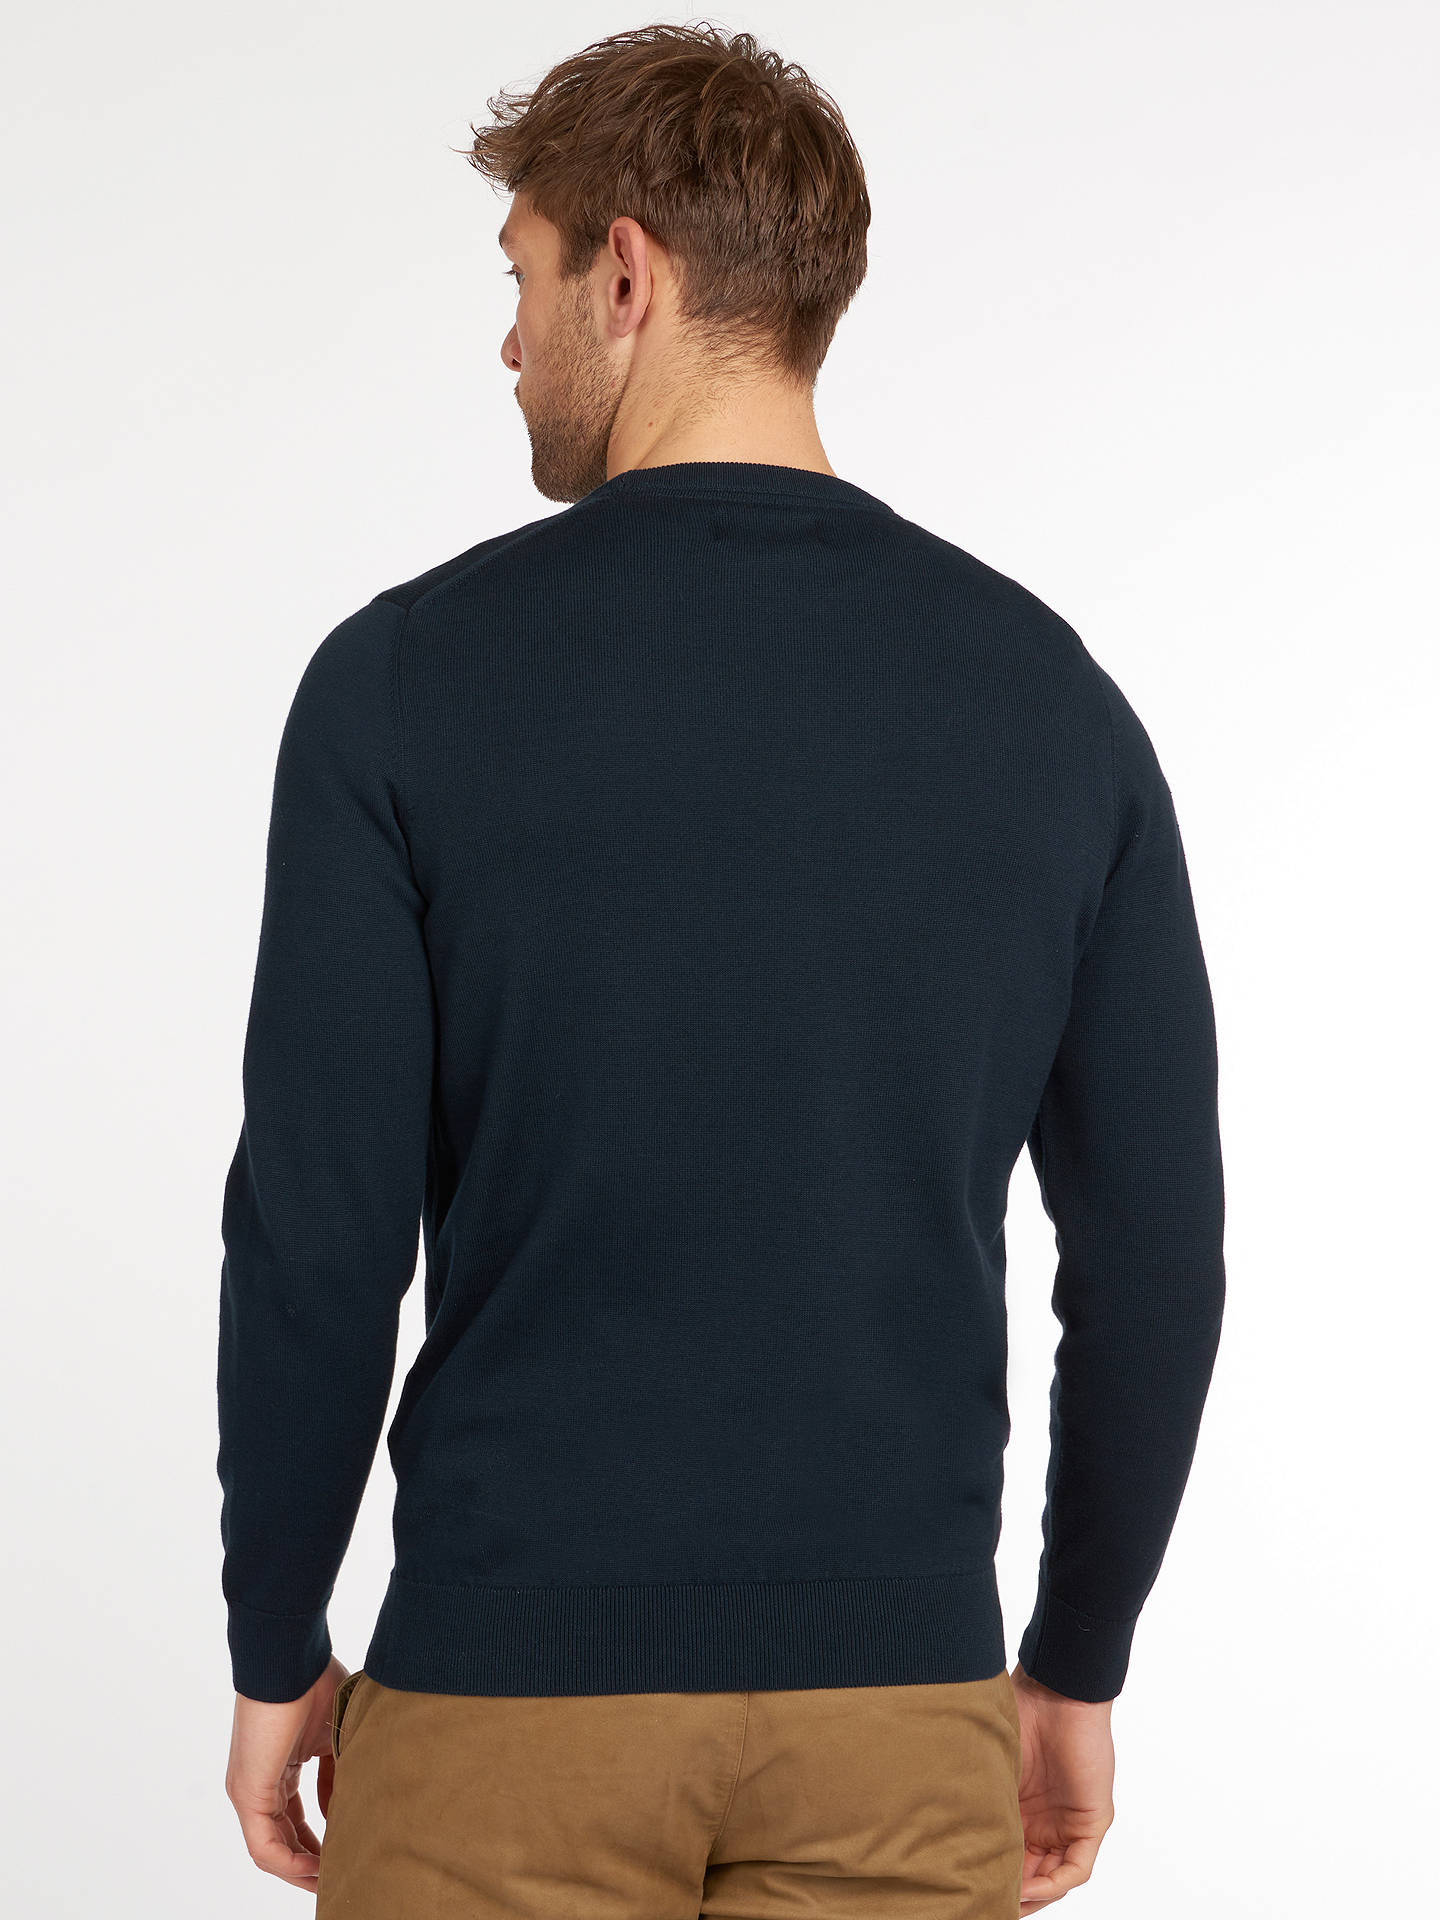 BuyBarbour Pima Cotton Crew Neck Jumper, Navy, S Online at johnlewis.com